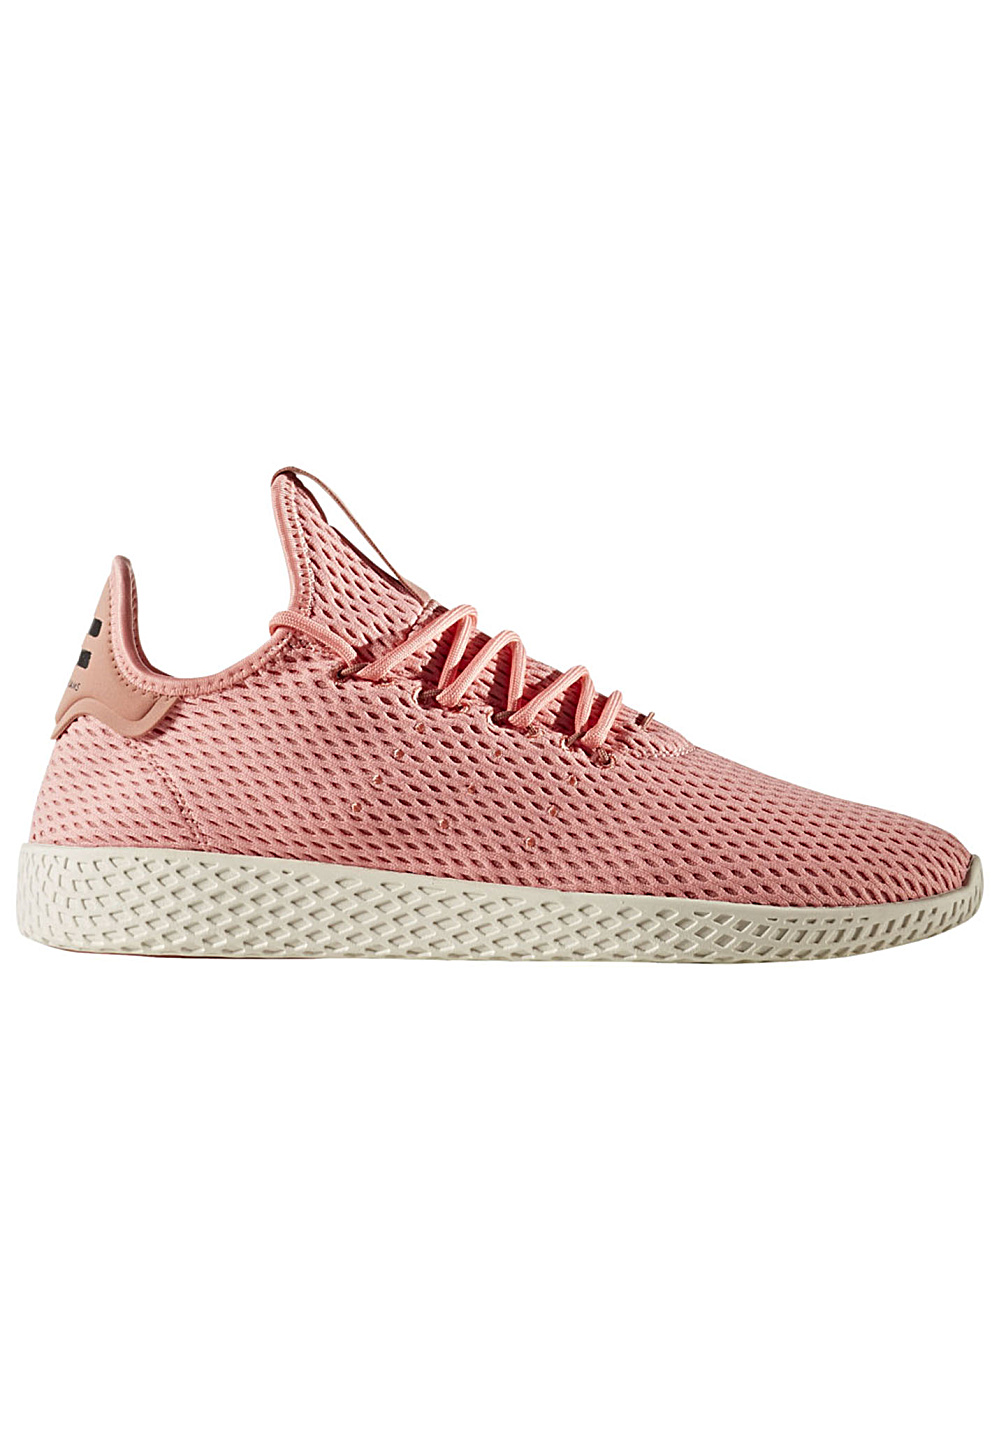 adidas rosa pharrel williams